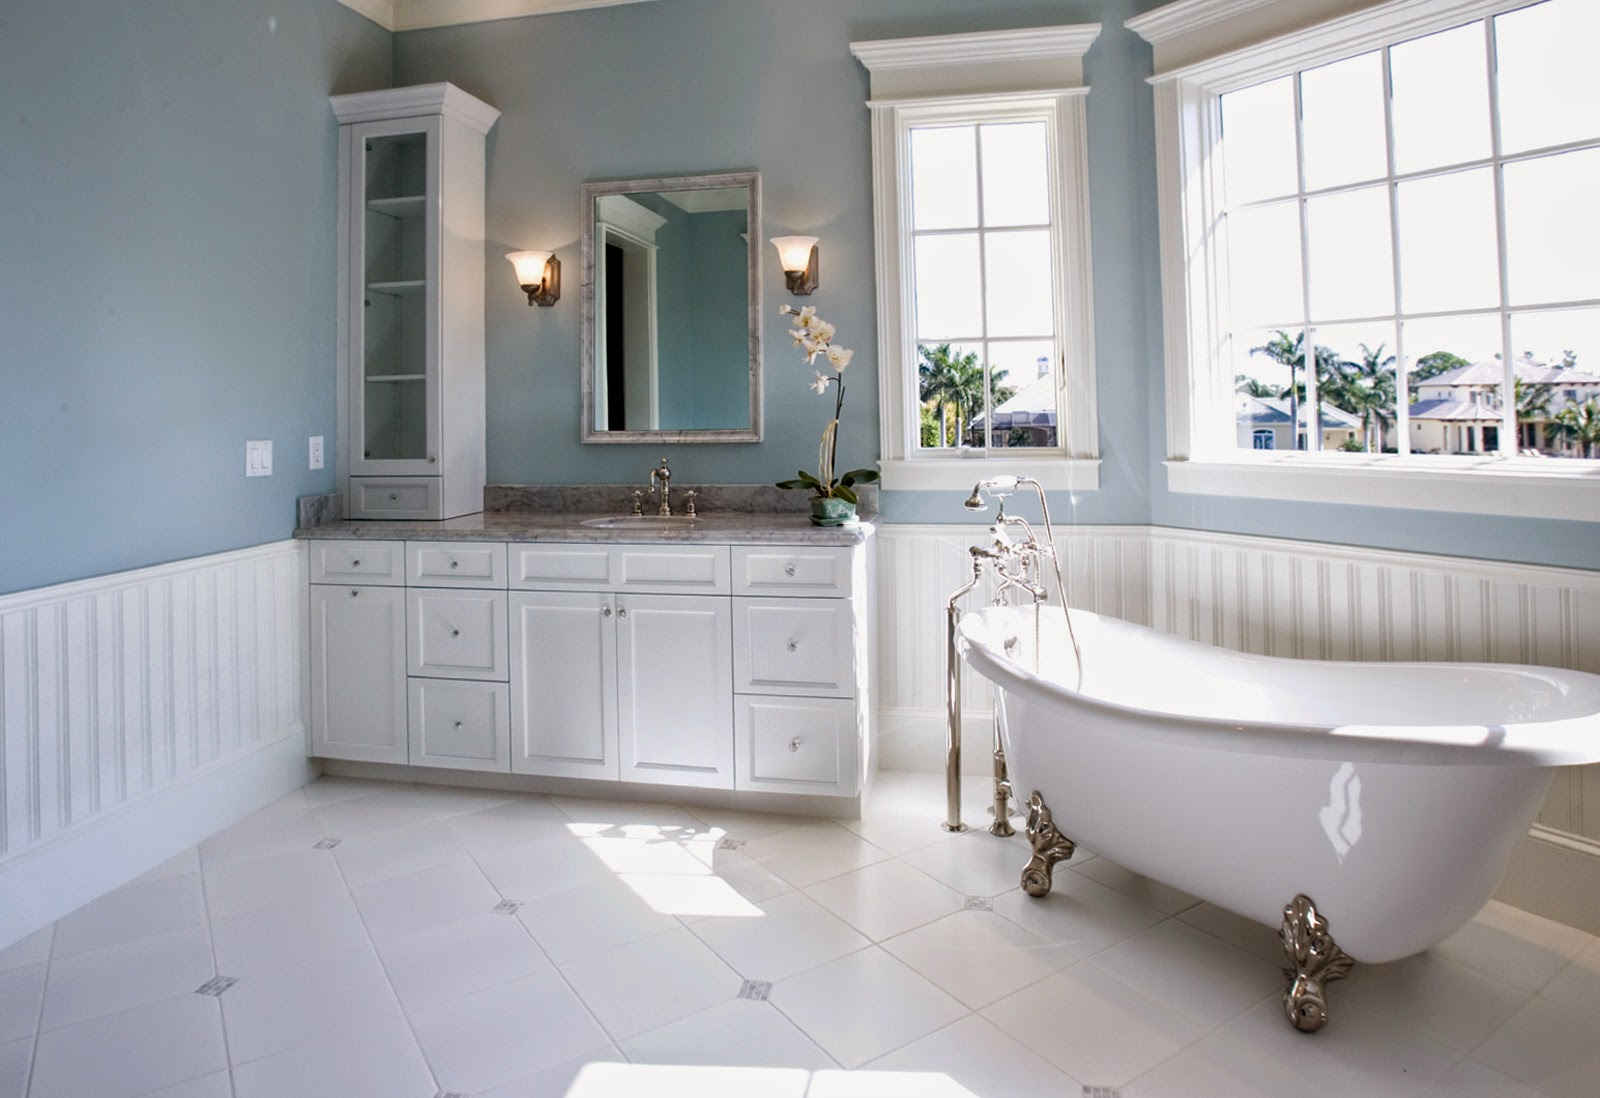 Top 10 beautiful bathroom design 2014 home interior blog for Top ten bathroom designs